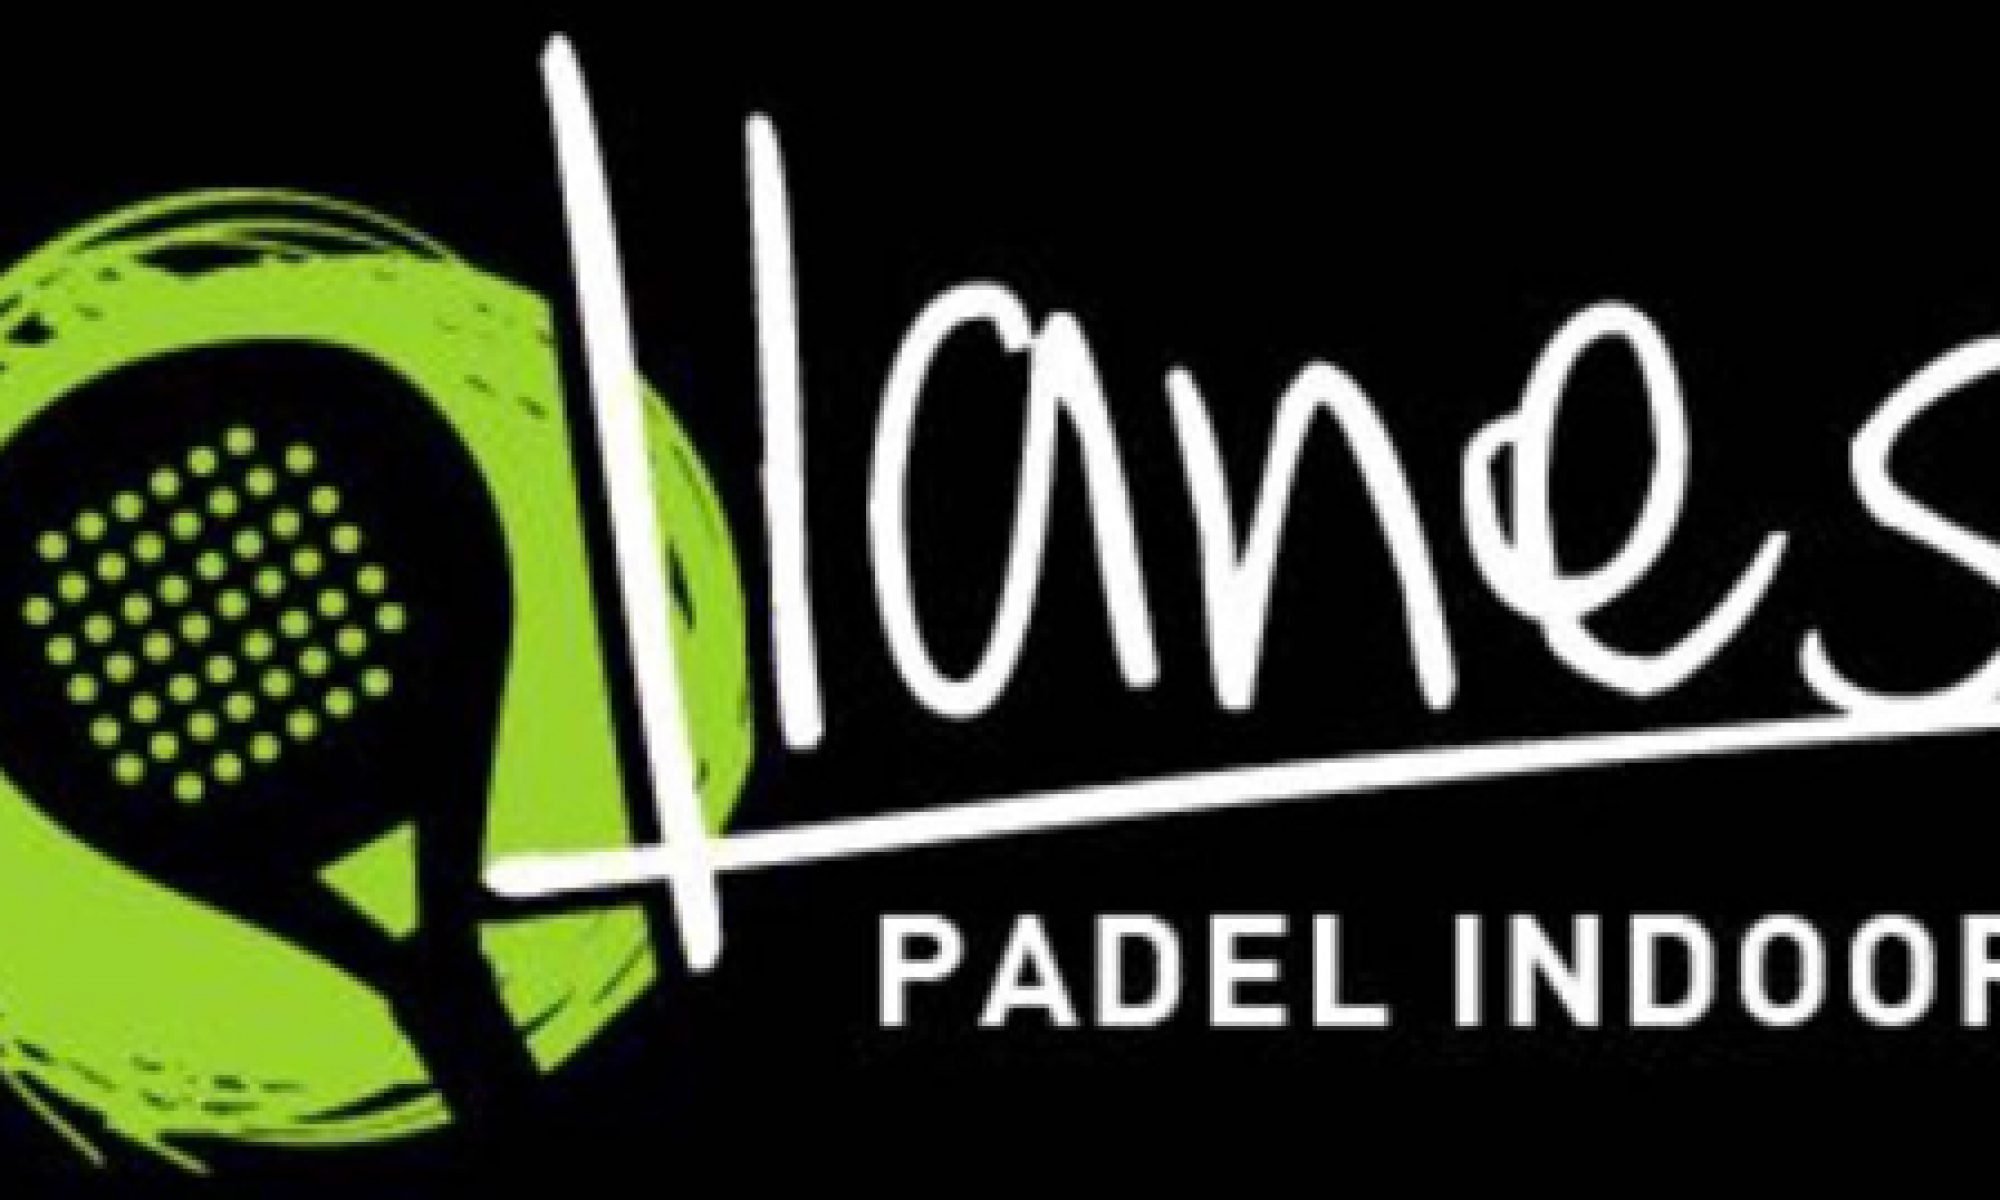 Padel Indoor Llanes